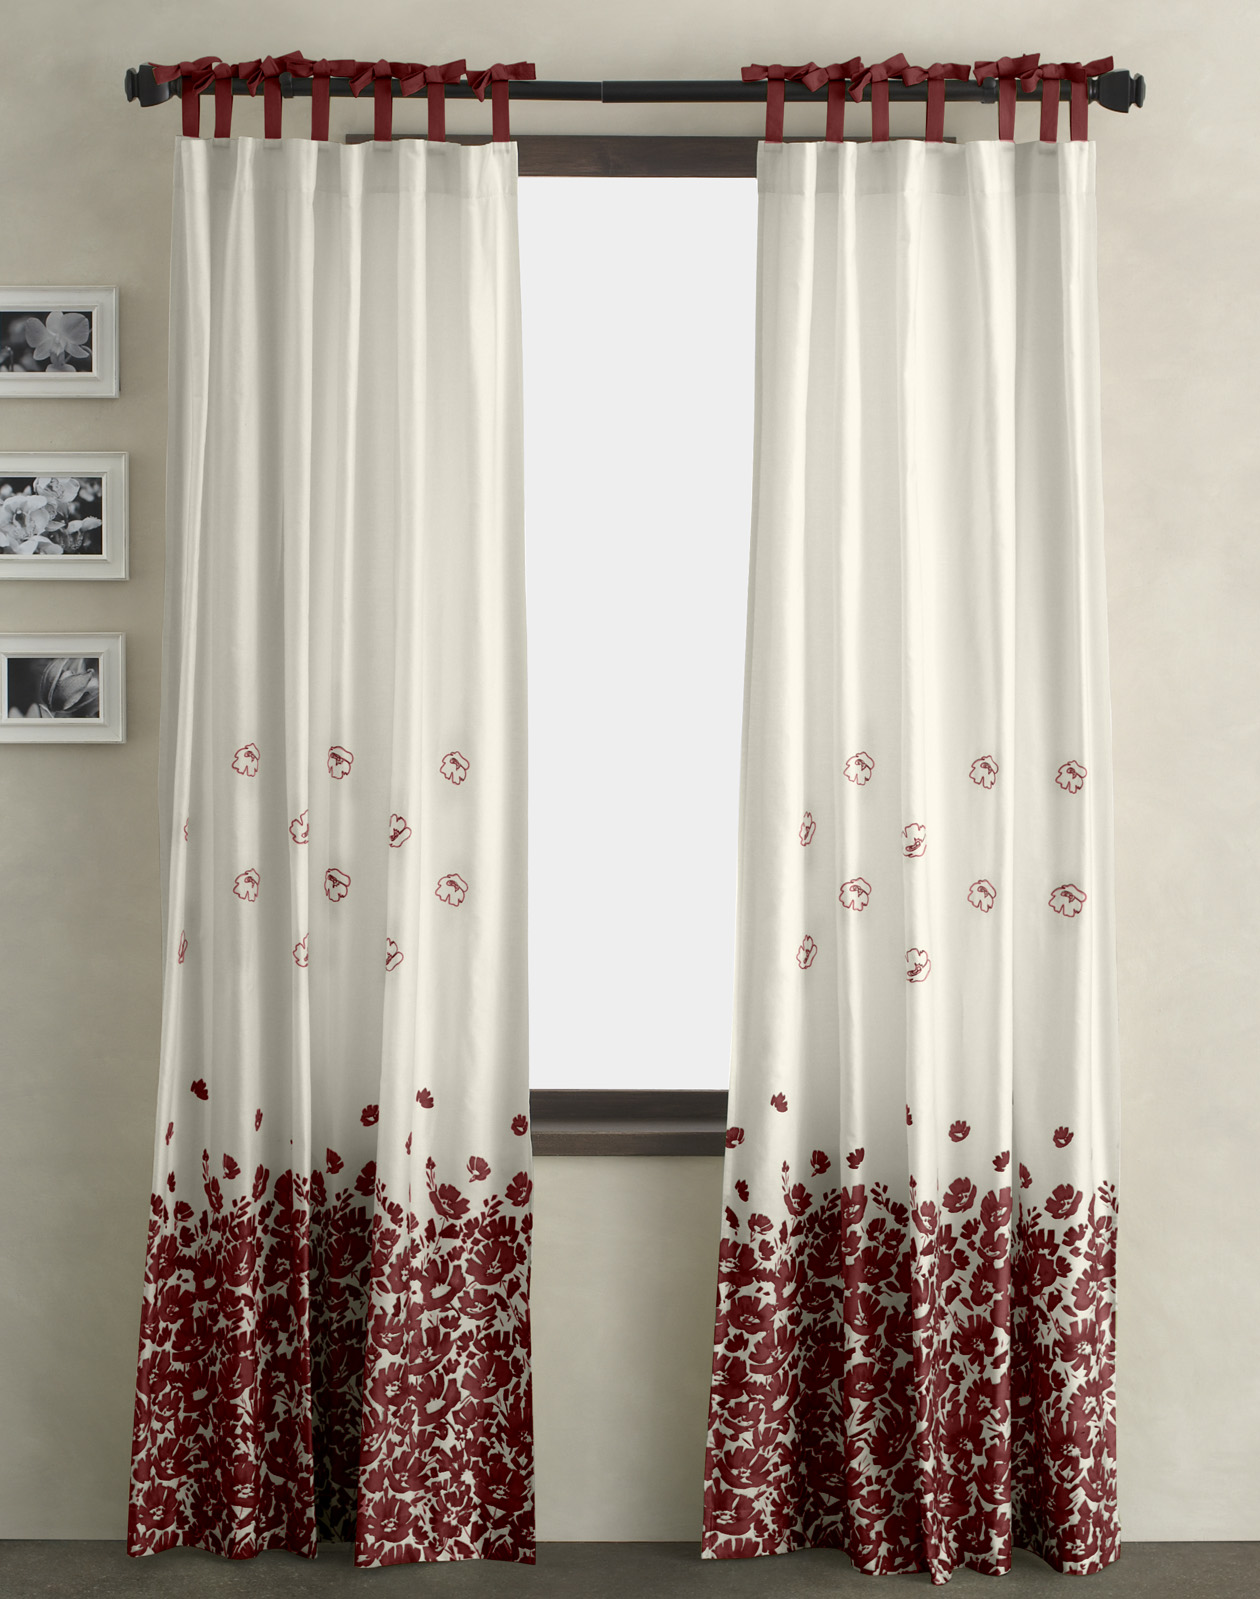 10 Photos To Gold Kitchen Curtains